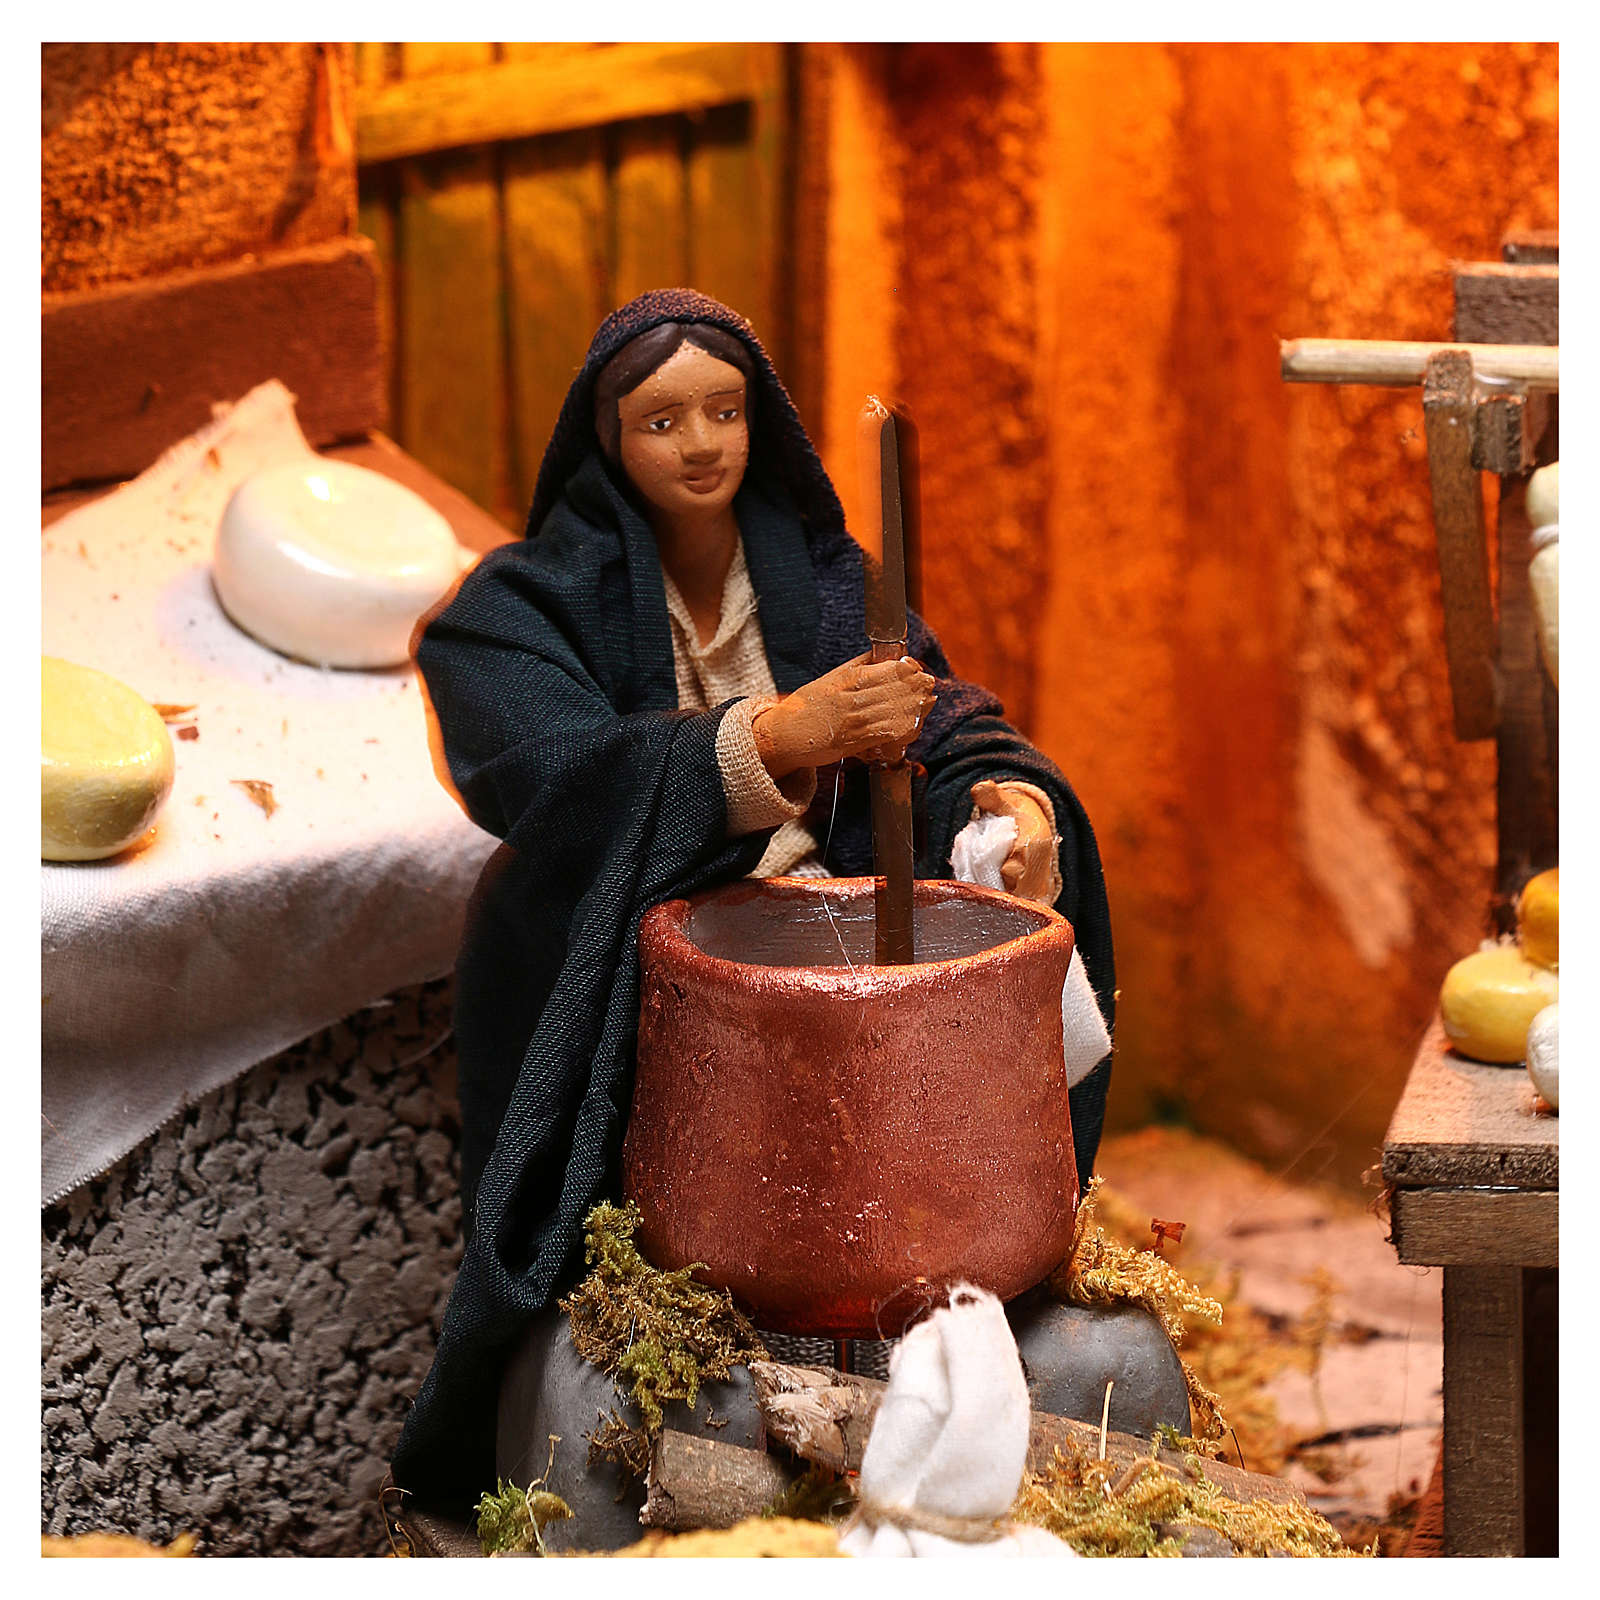 Moving woman mixing polenta and cheeses 12 cm  for Neapolitan nativity scene 4